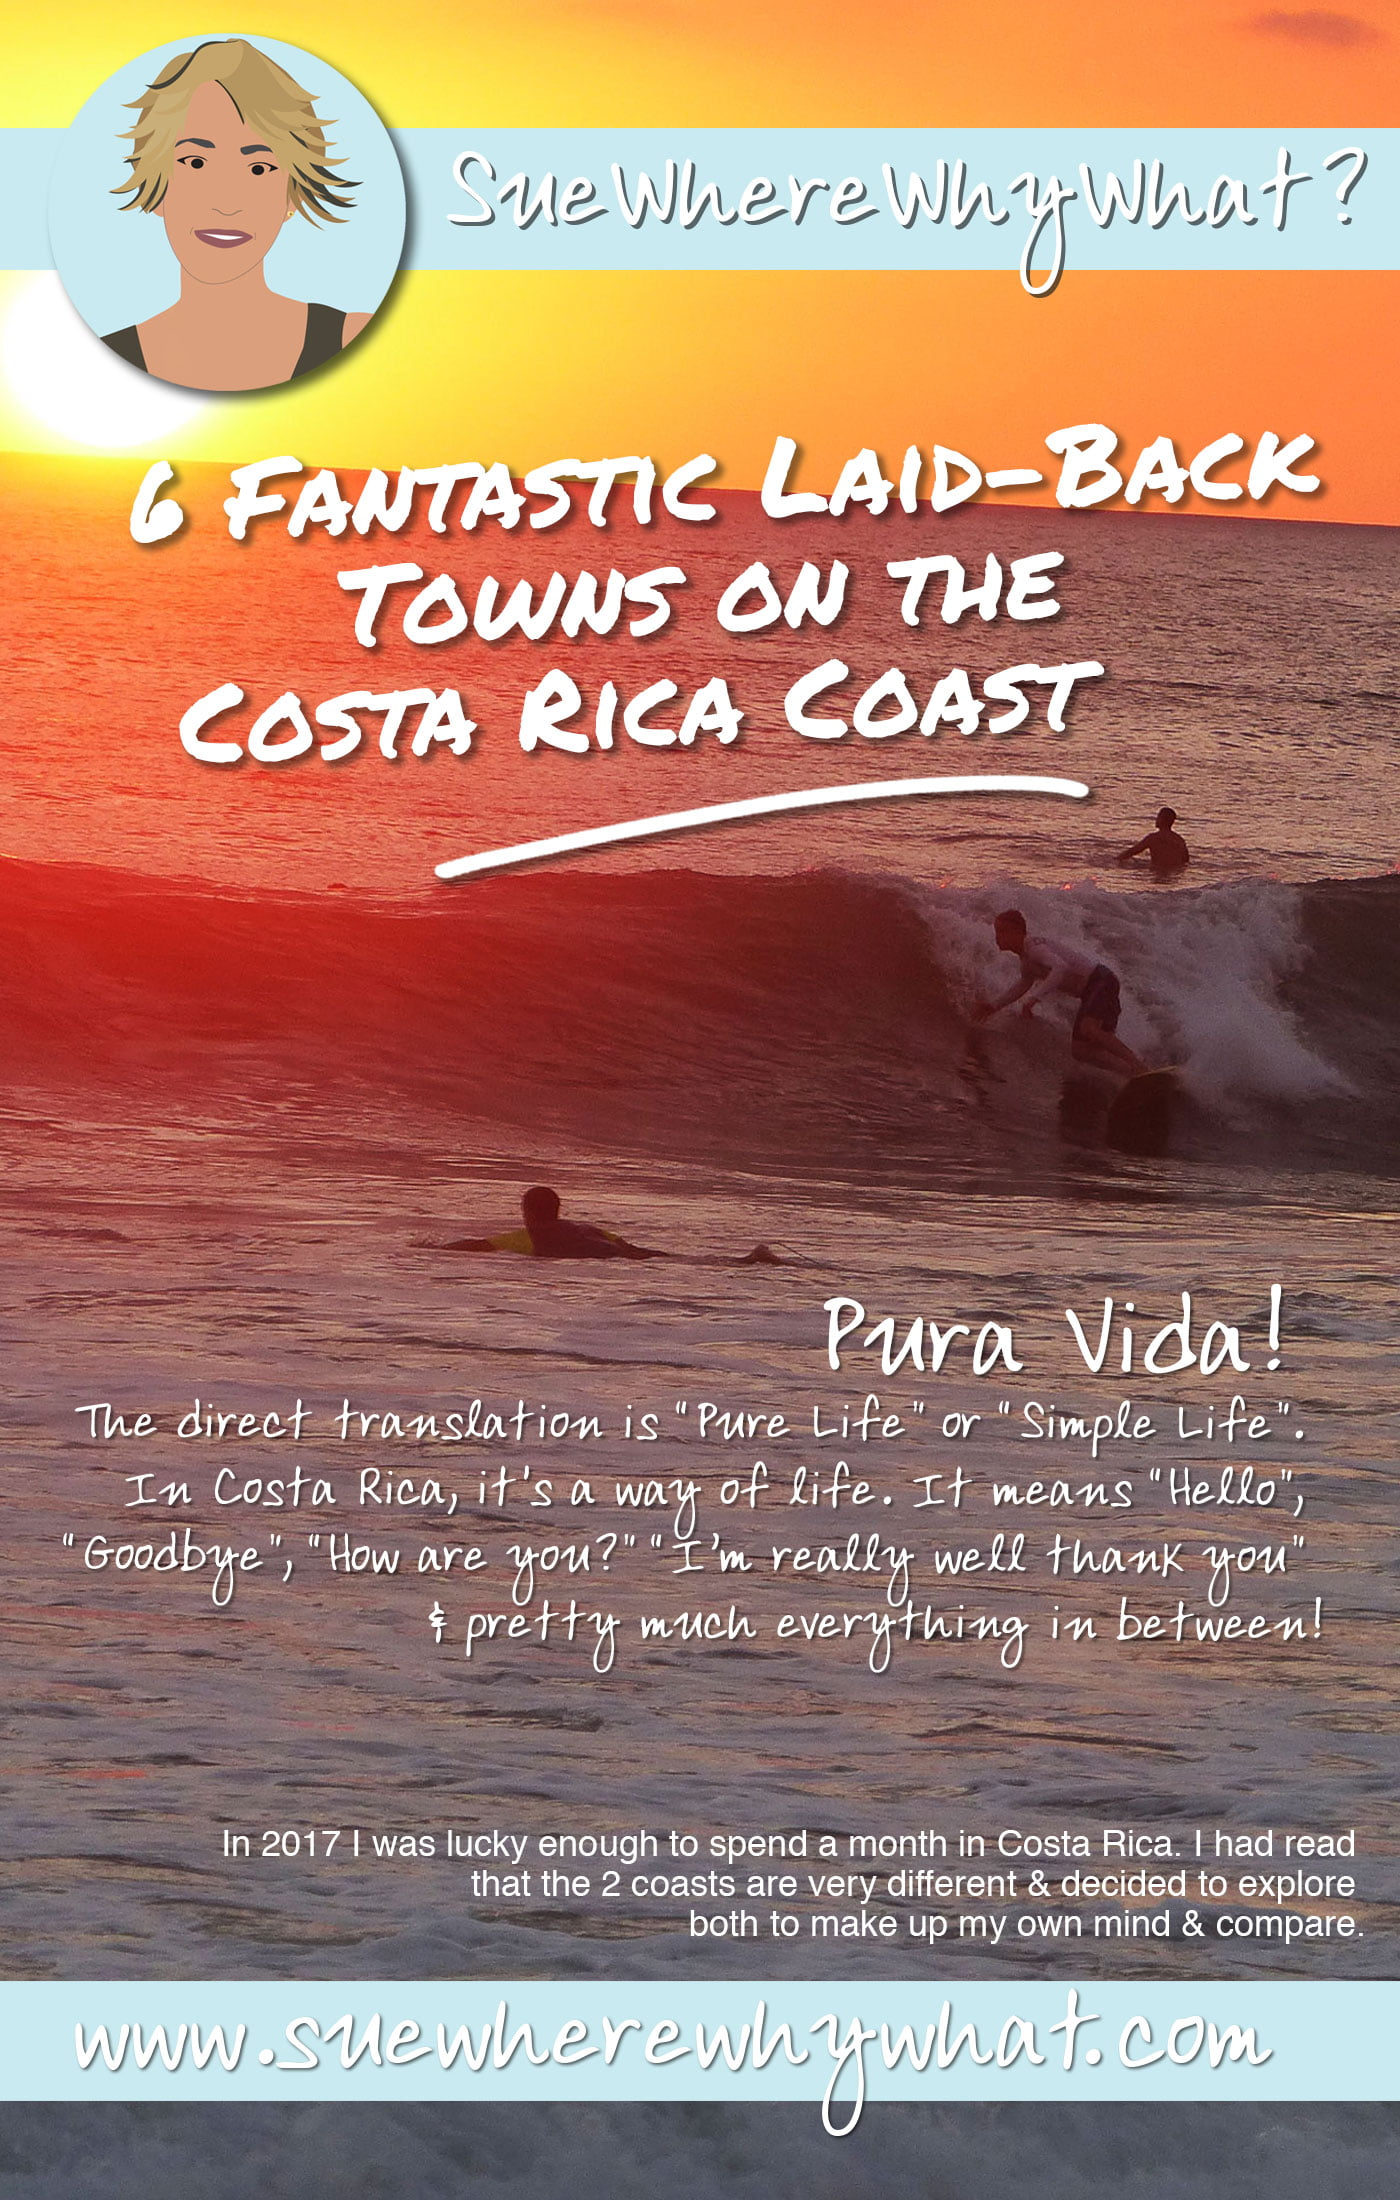 A Guide to some of the more relaxed places to stay on the Costa Rica Coasts. A comparison of the Pacific & Caribbean Coasts. Includes Samara, Santa Teresa, Quepos, Cahuita, Puerto Viejo & Tortuguero. Pura Vida!